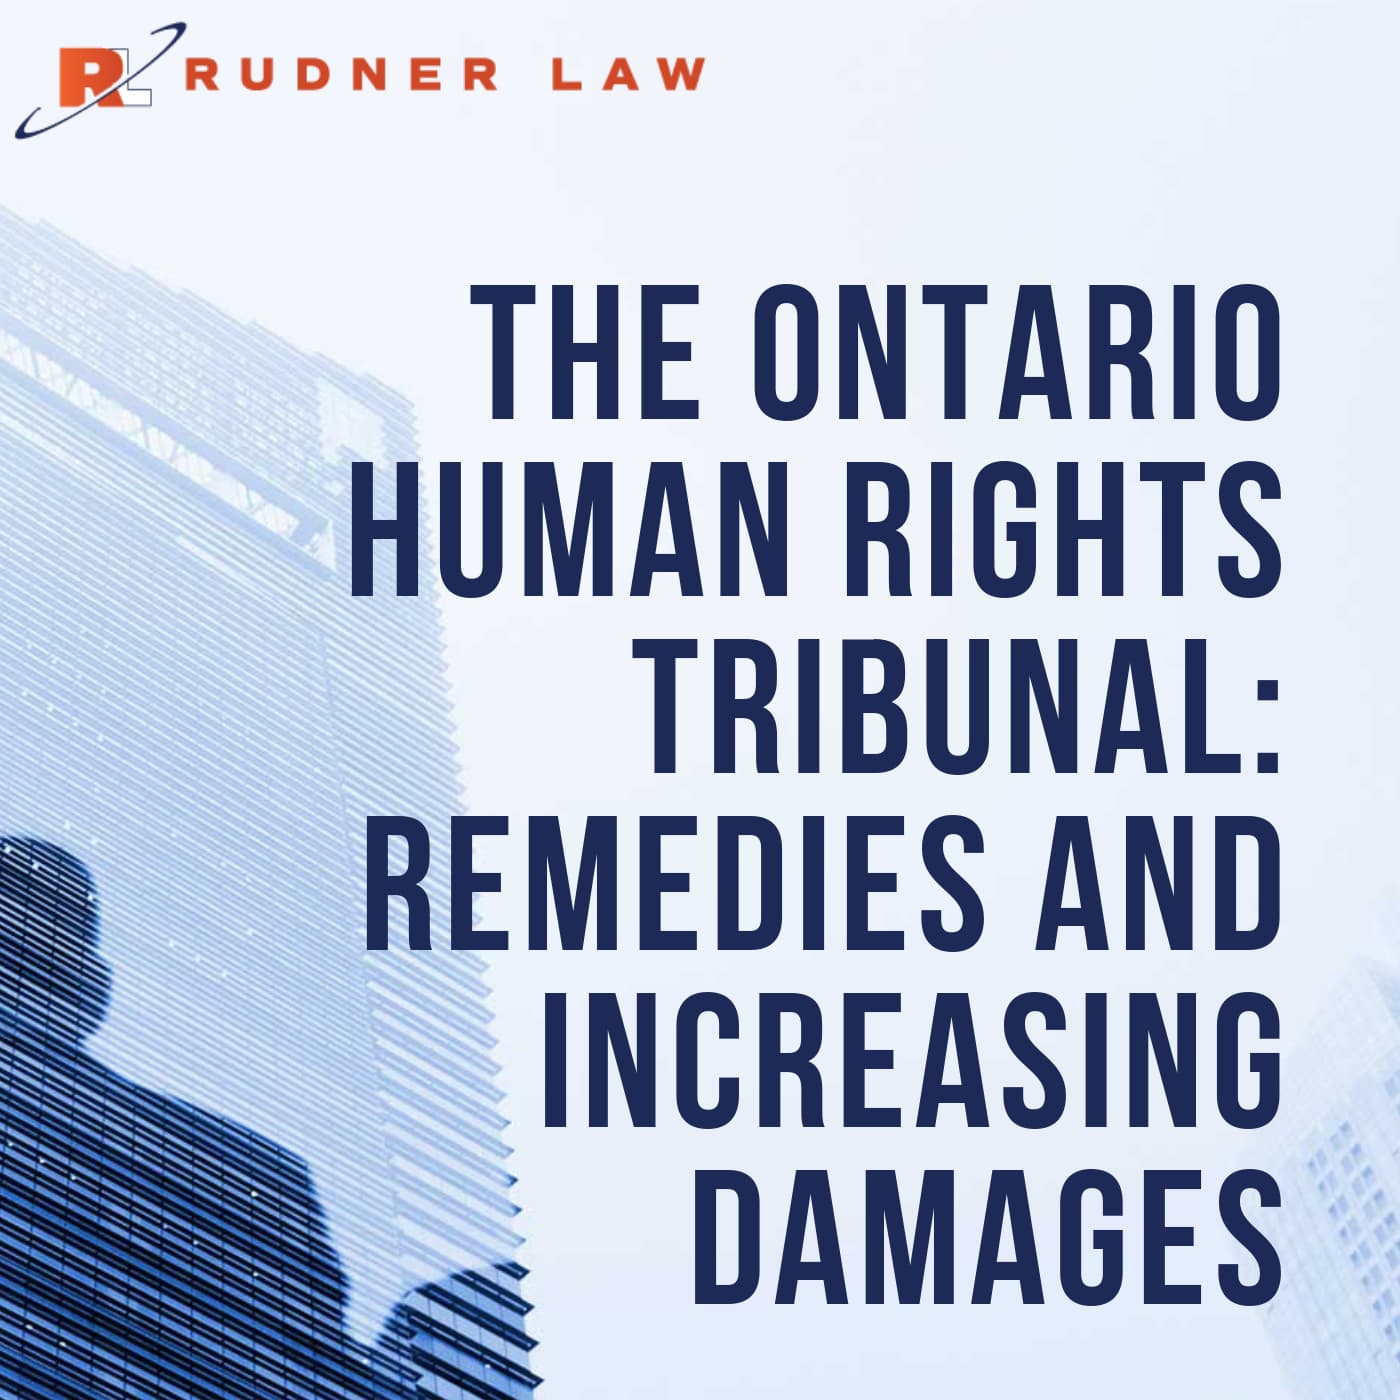 Audio: The Ontario Human Rights Tribunal: Remedies and Increasing Damages